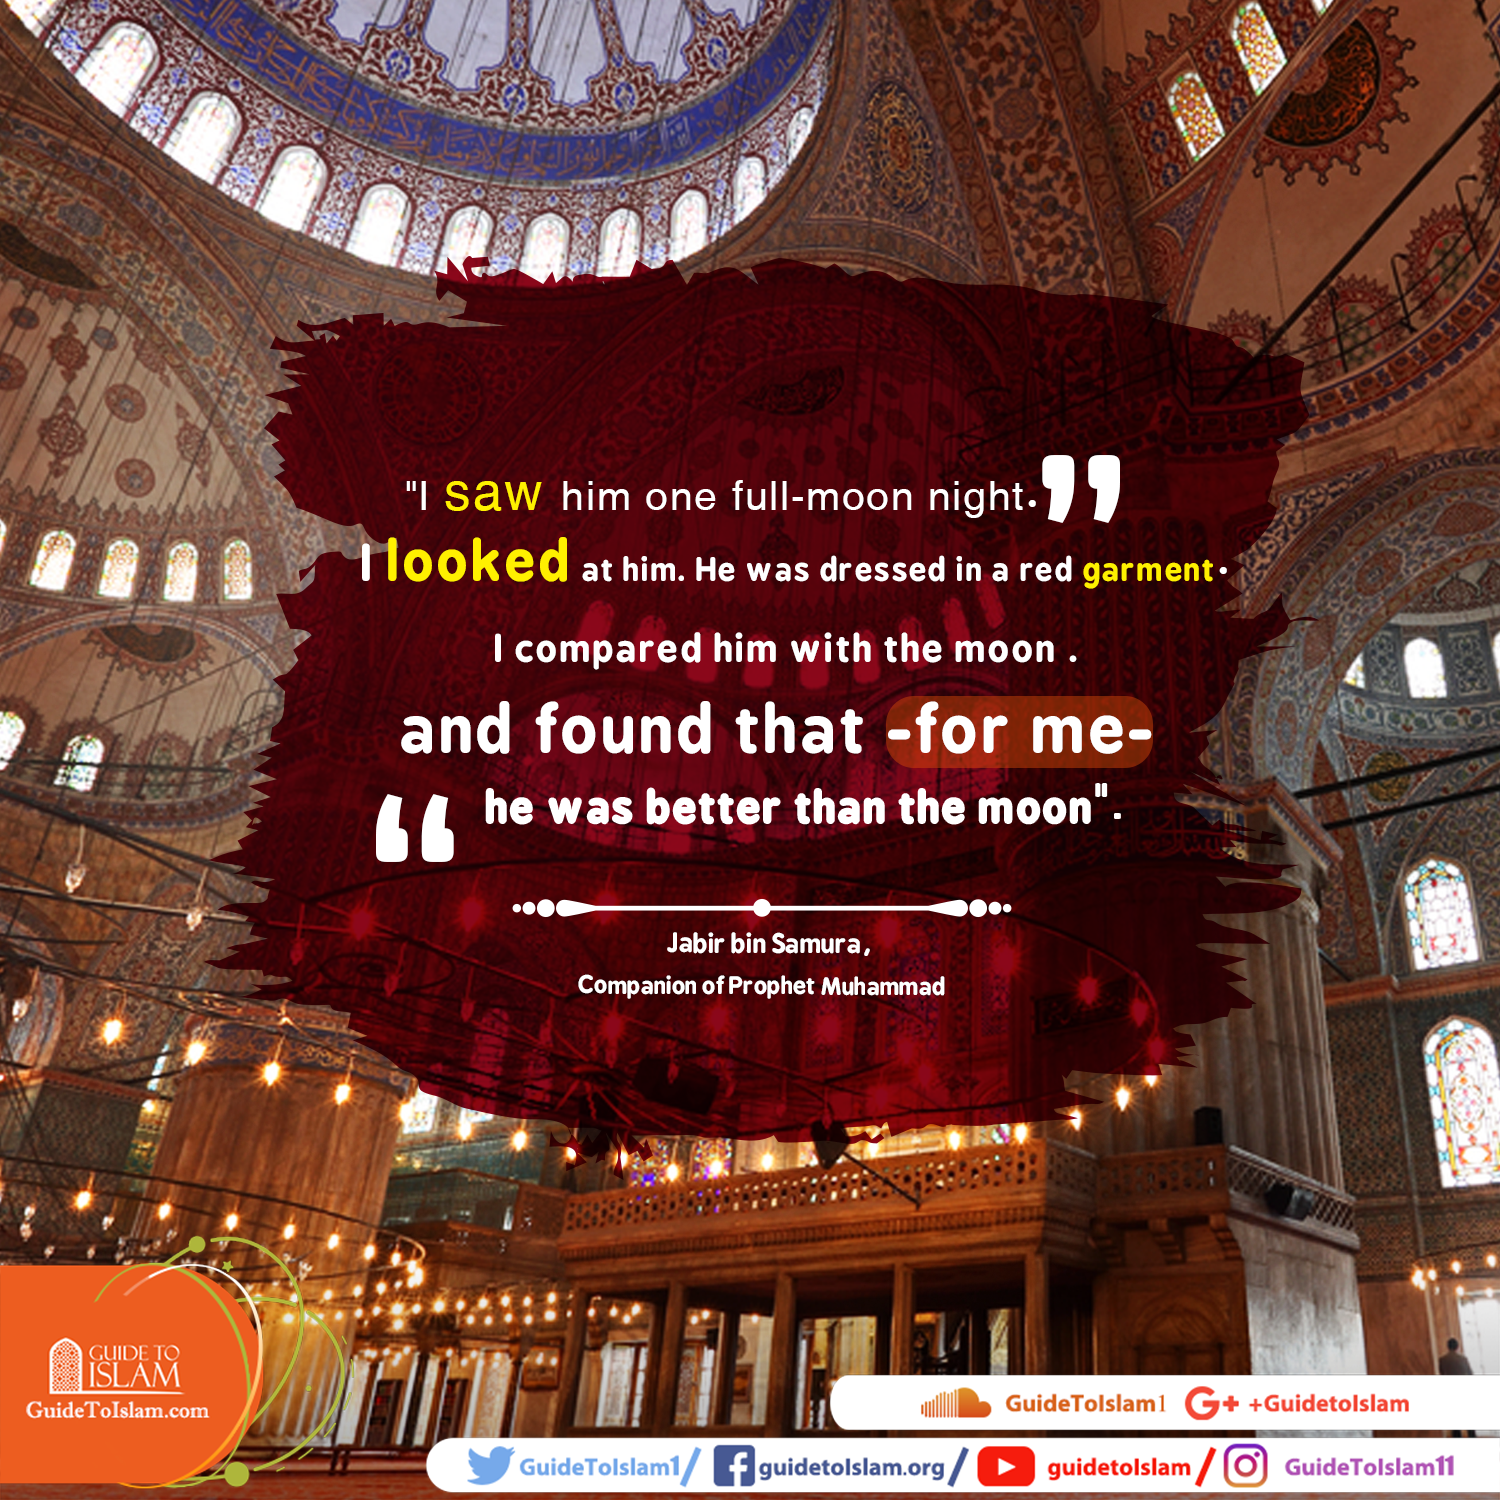 The Beauty of the Prophet Muhammad